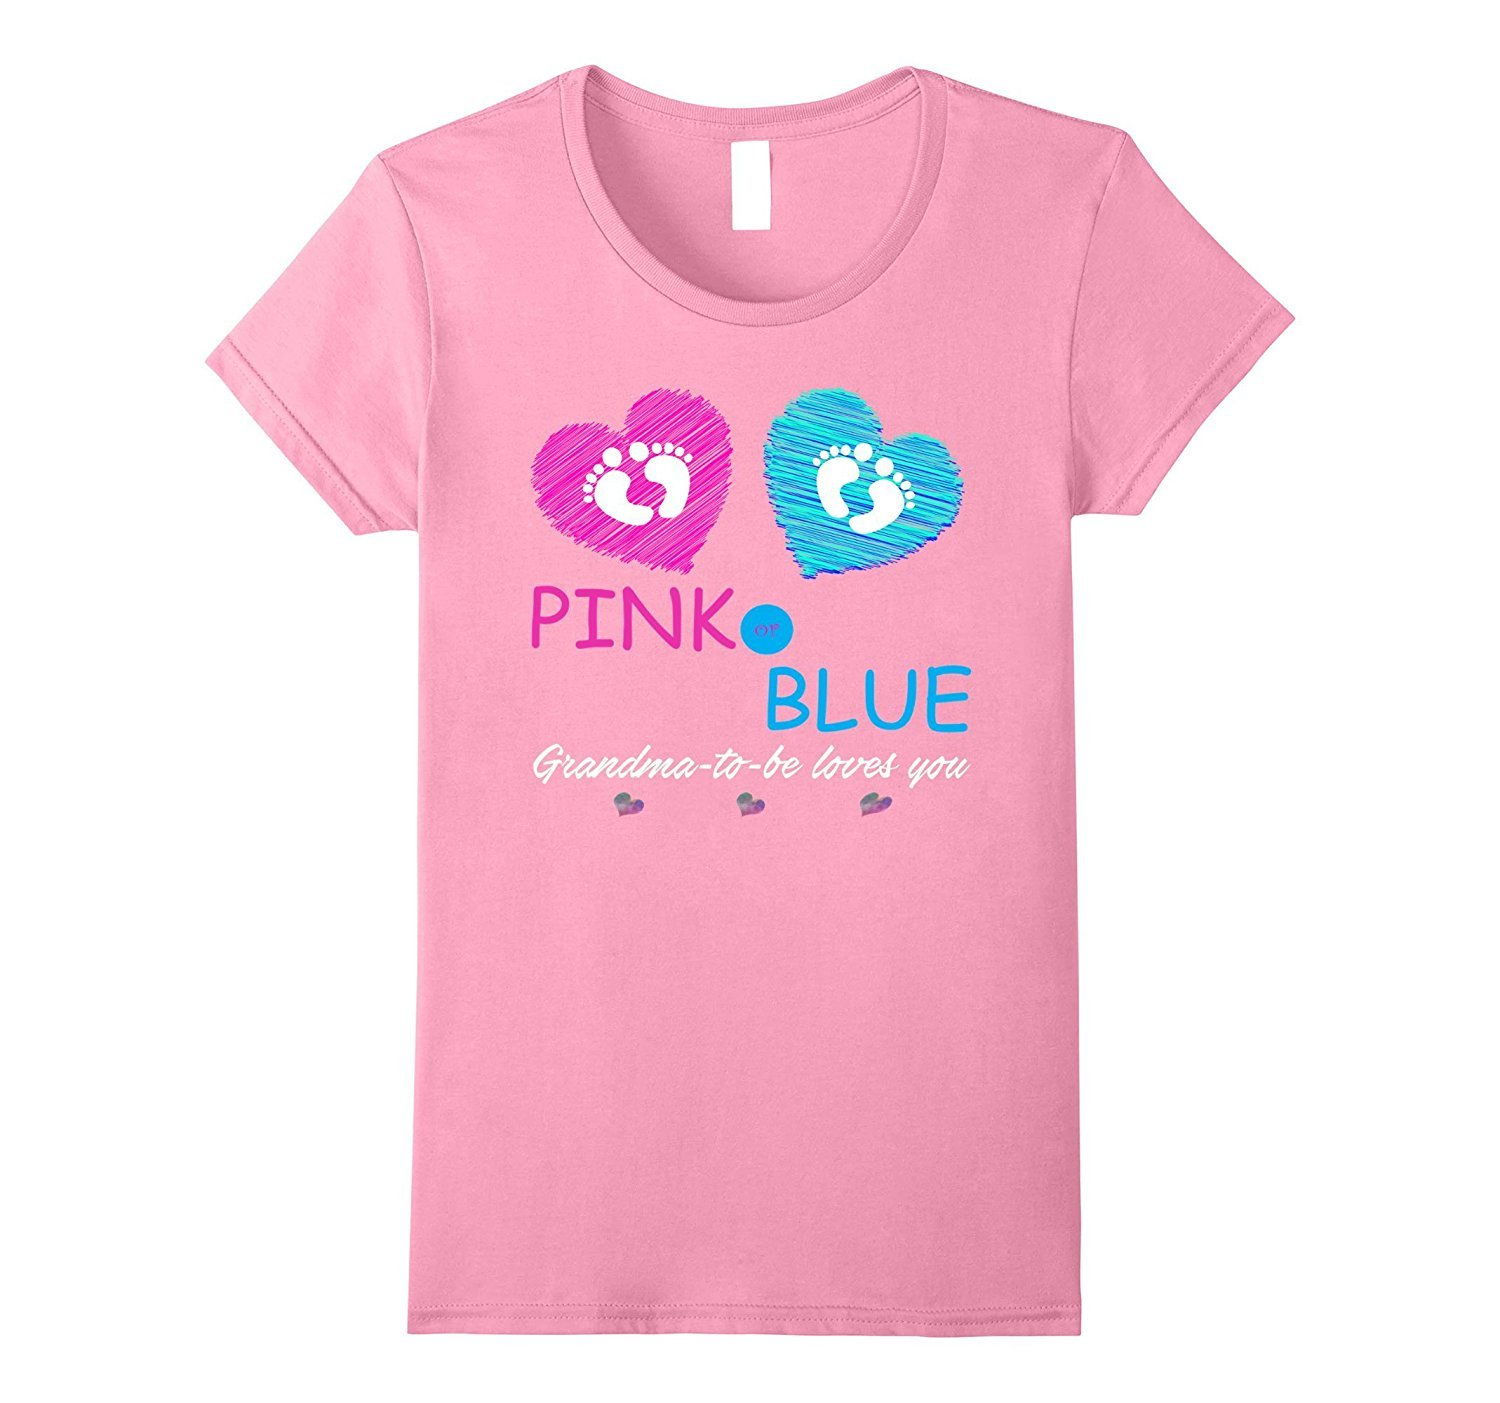 New shirt pink or blue baby shower gender reveal shirt for Baby pink shirt for man